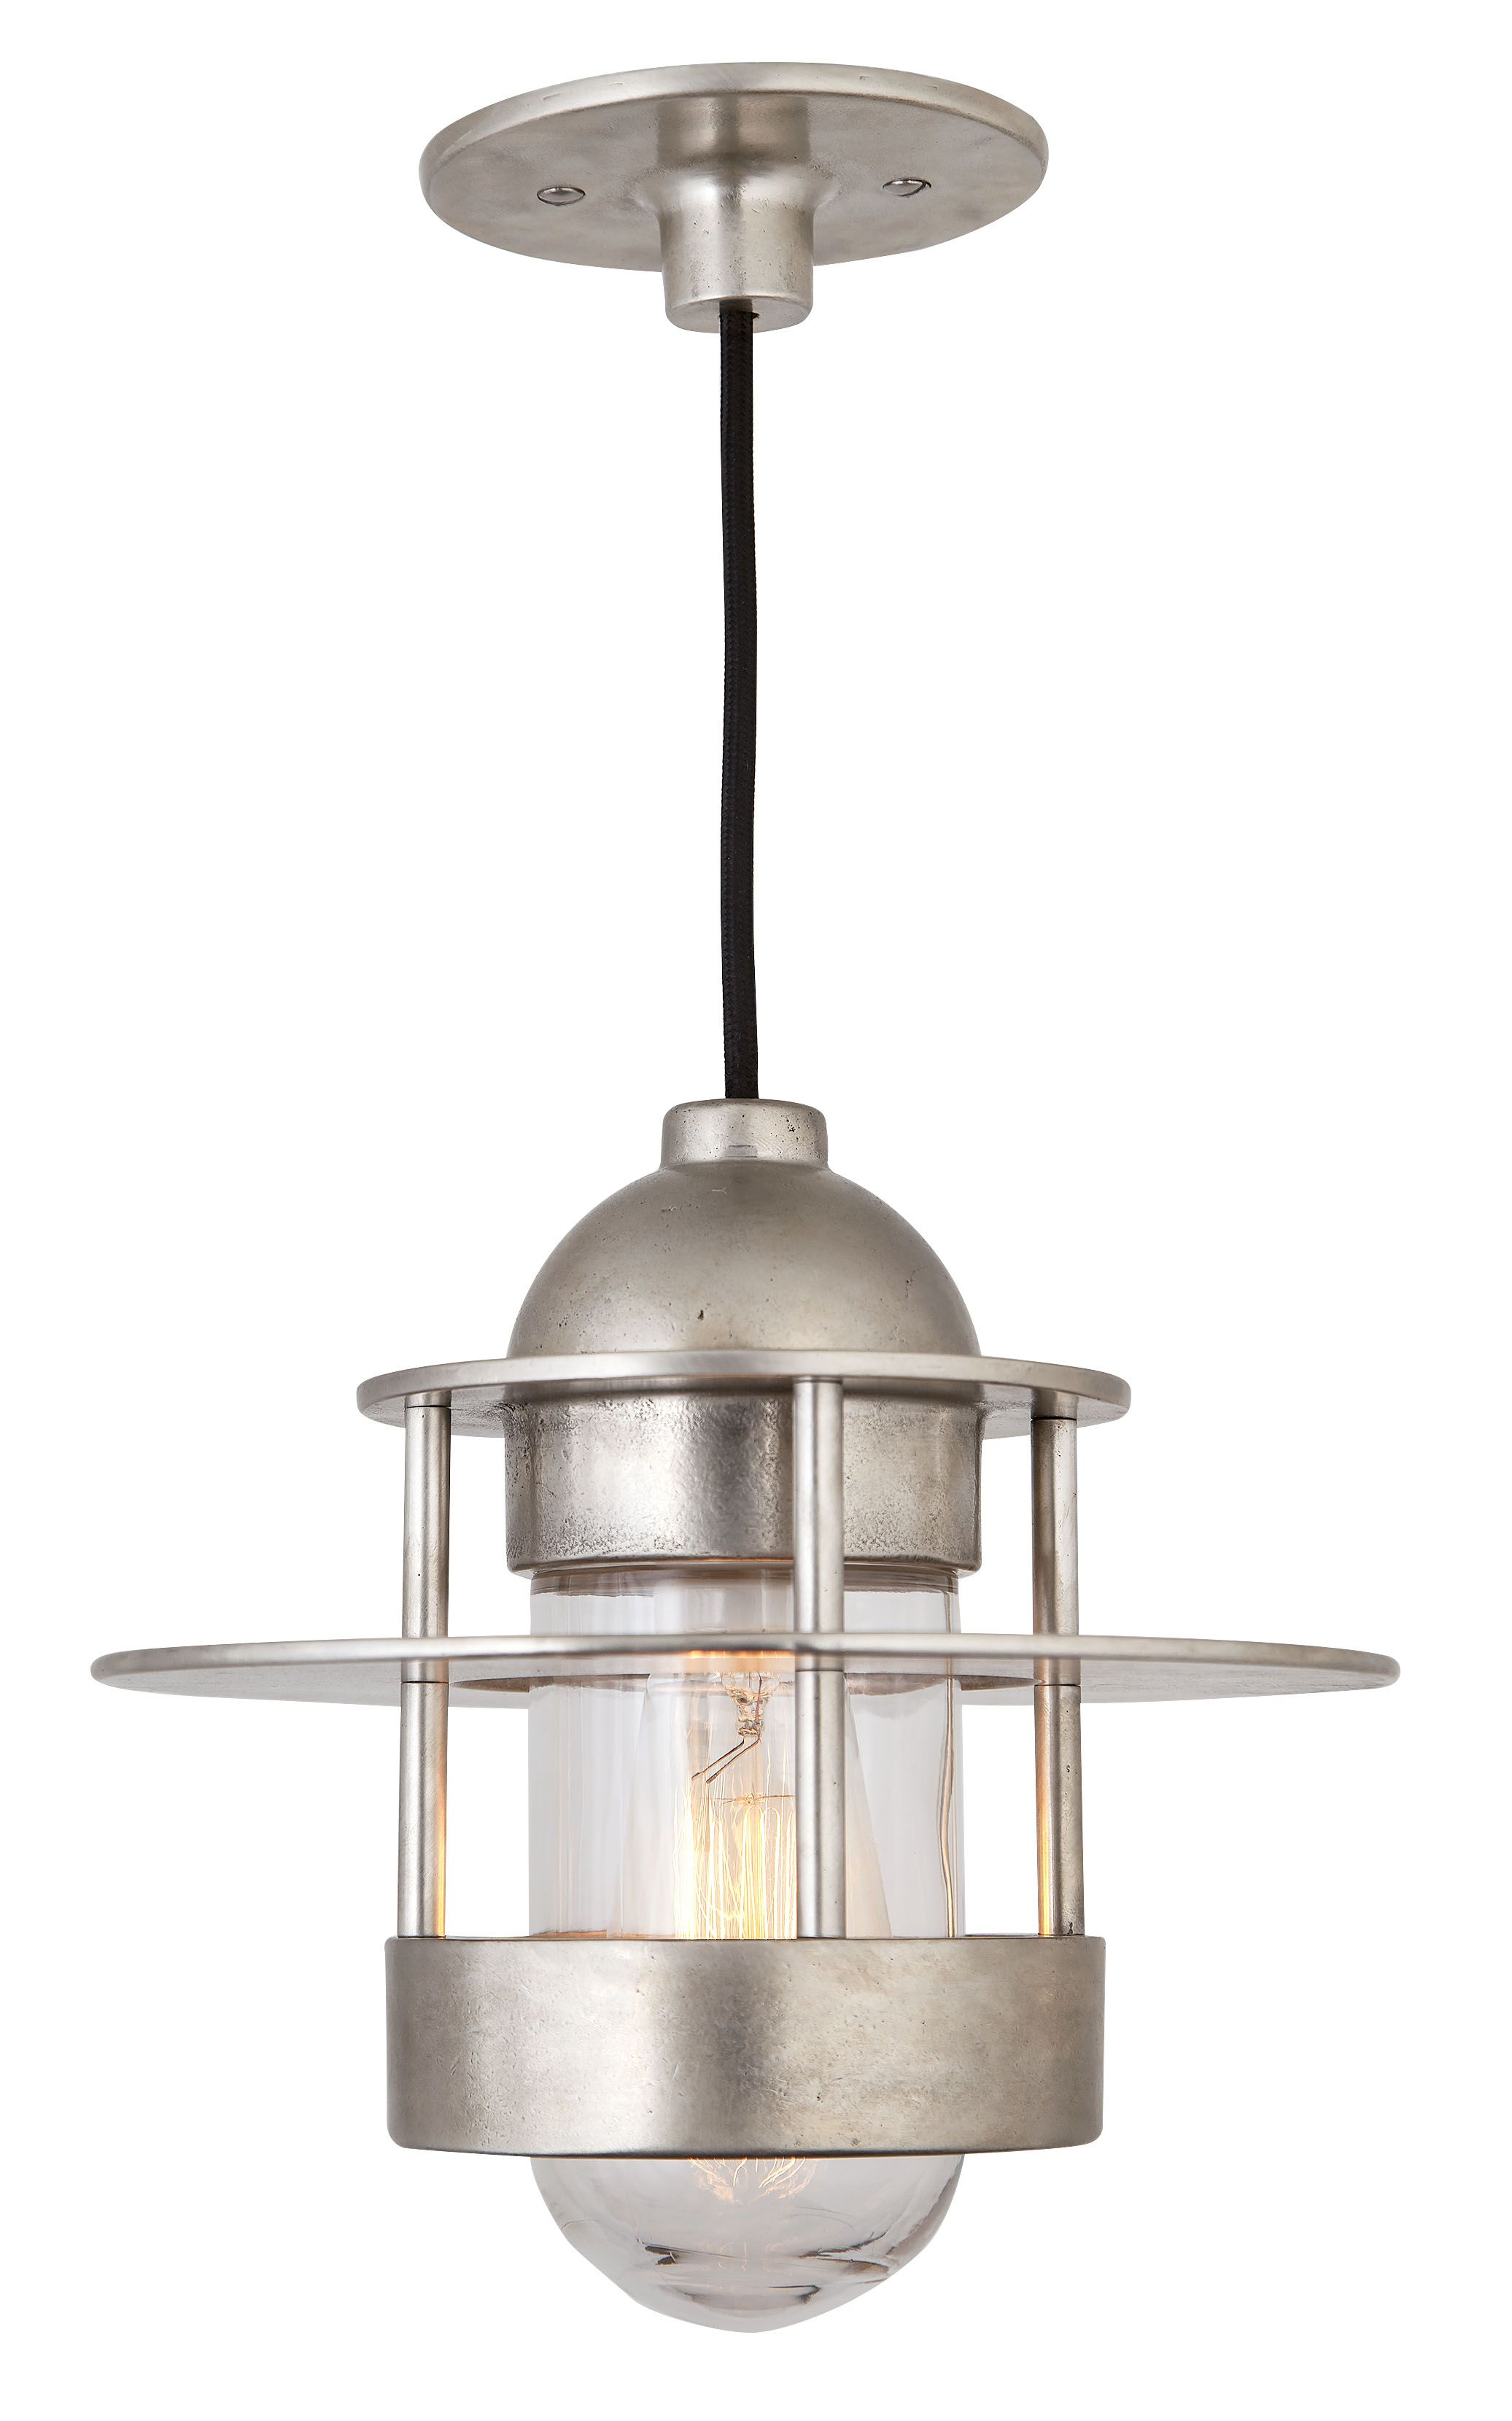 Pend 1001 Hudson Pendant Light With Center Ring